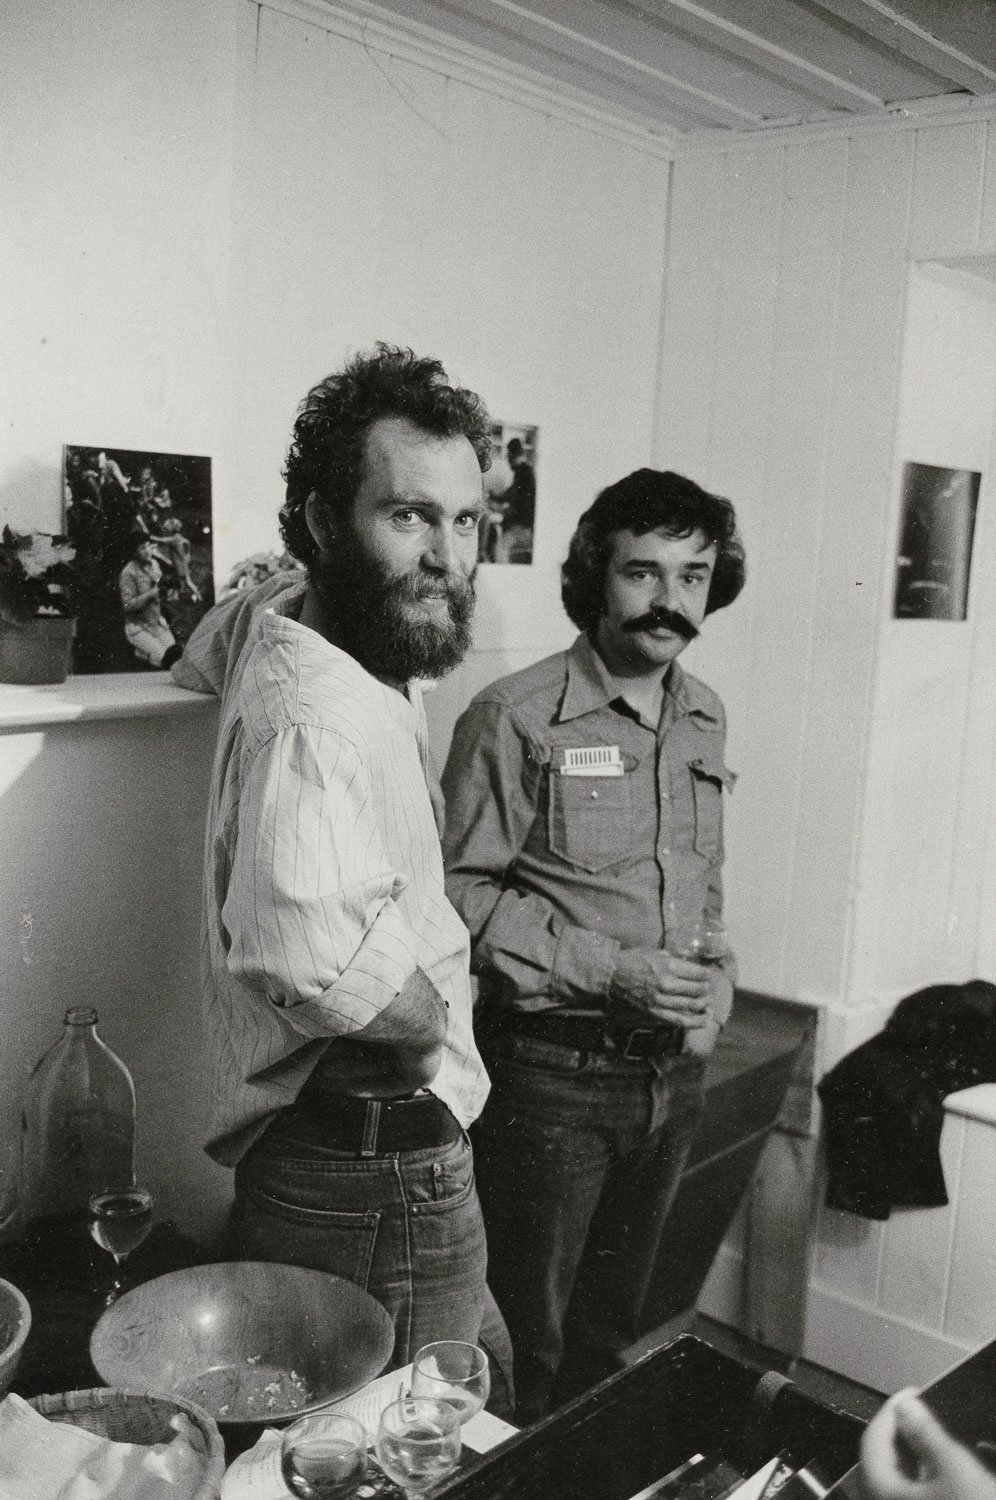 John B. Turner.  Glenn Busch (left) and Tom Elliot at the opening of Snaps Gallery , 1975 (exhibition by Max Oettli)